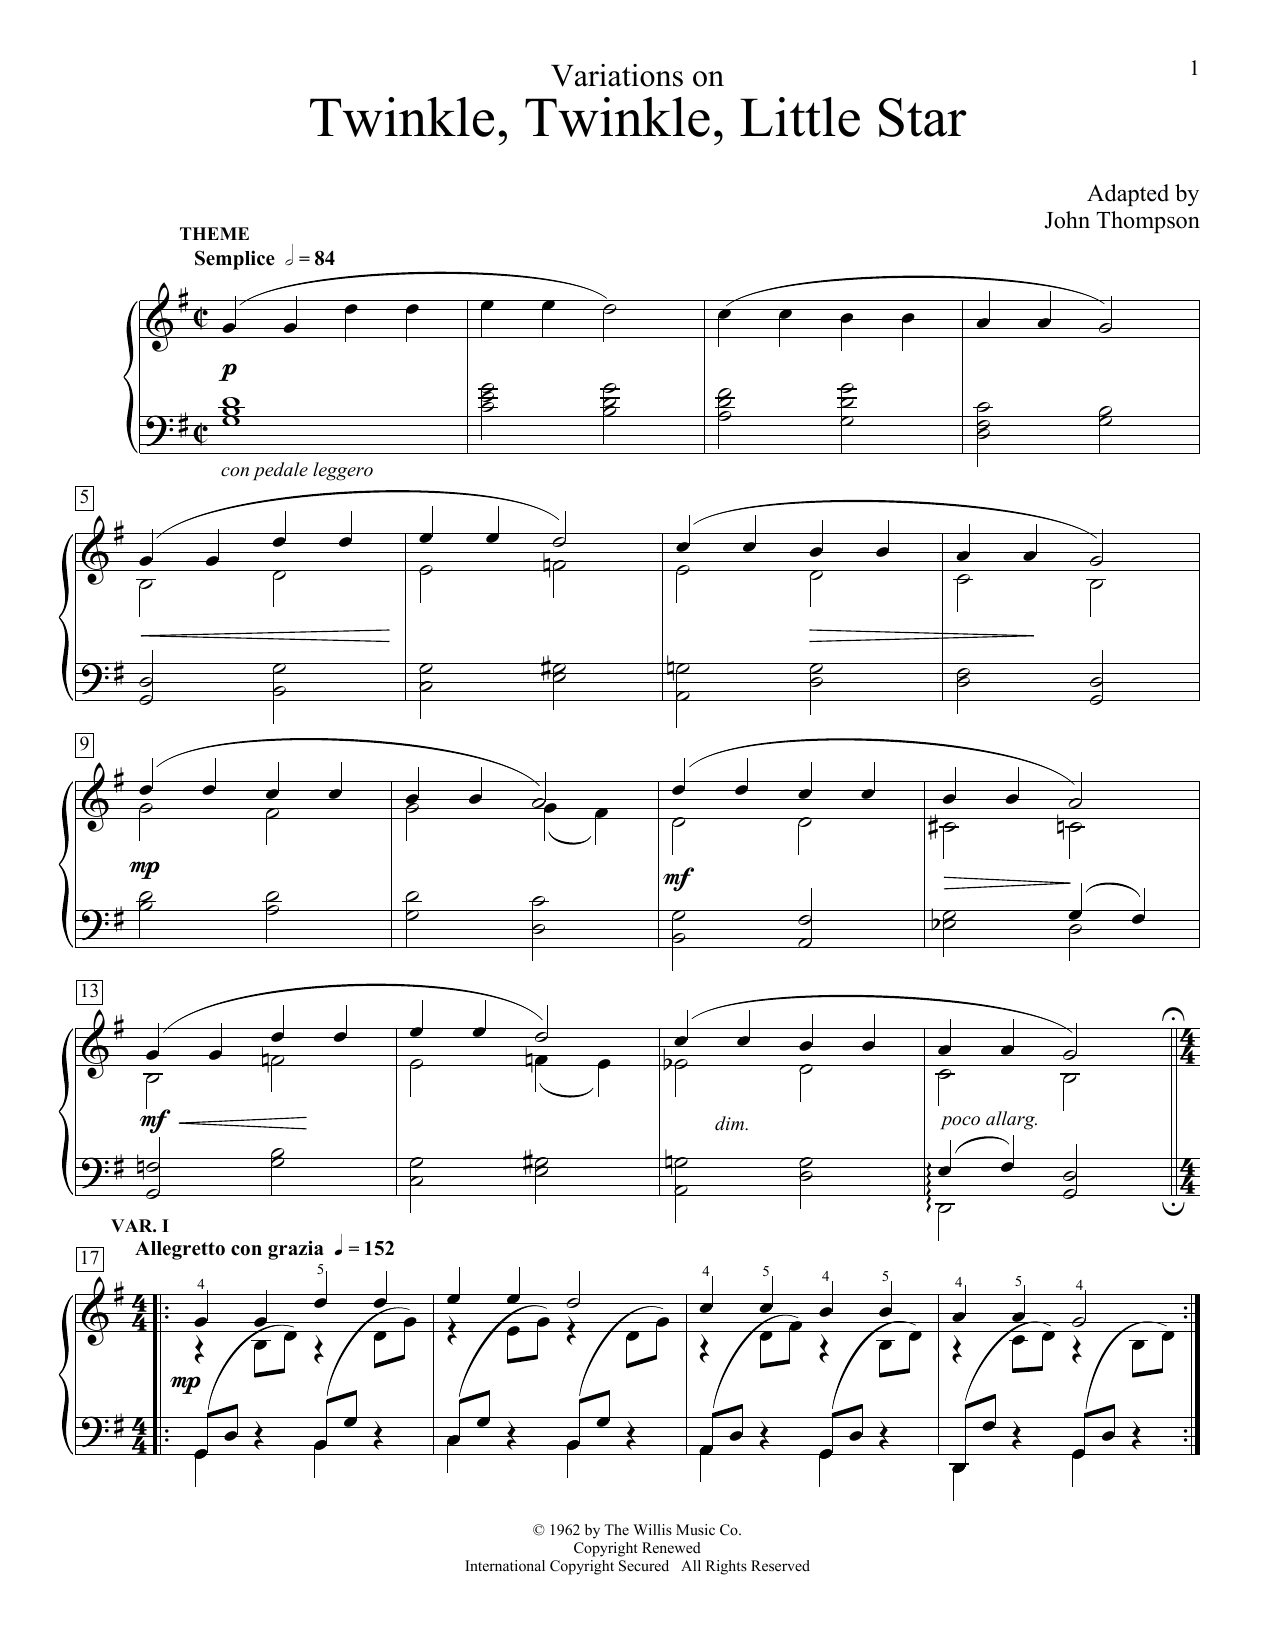 Variations On Twinkle, Twinkle, Little Star : Sheet Music Direct